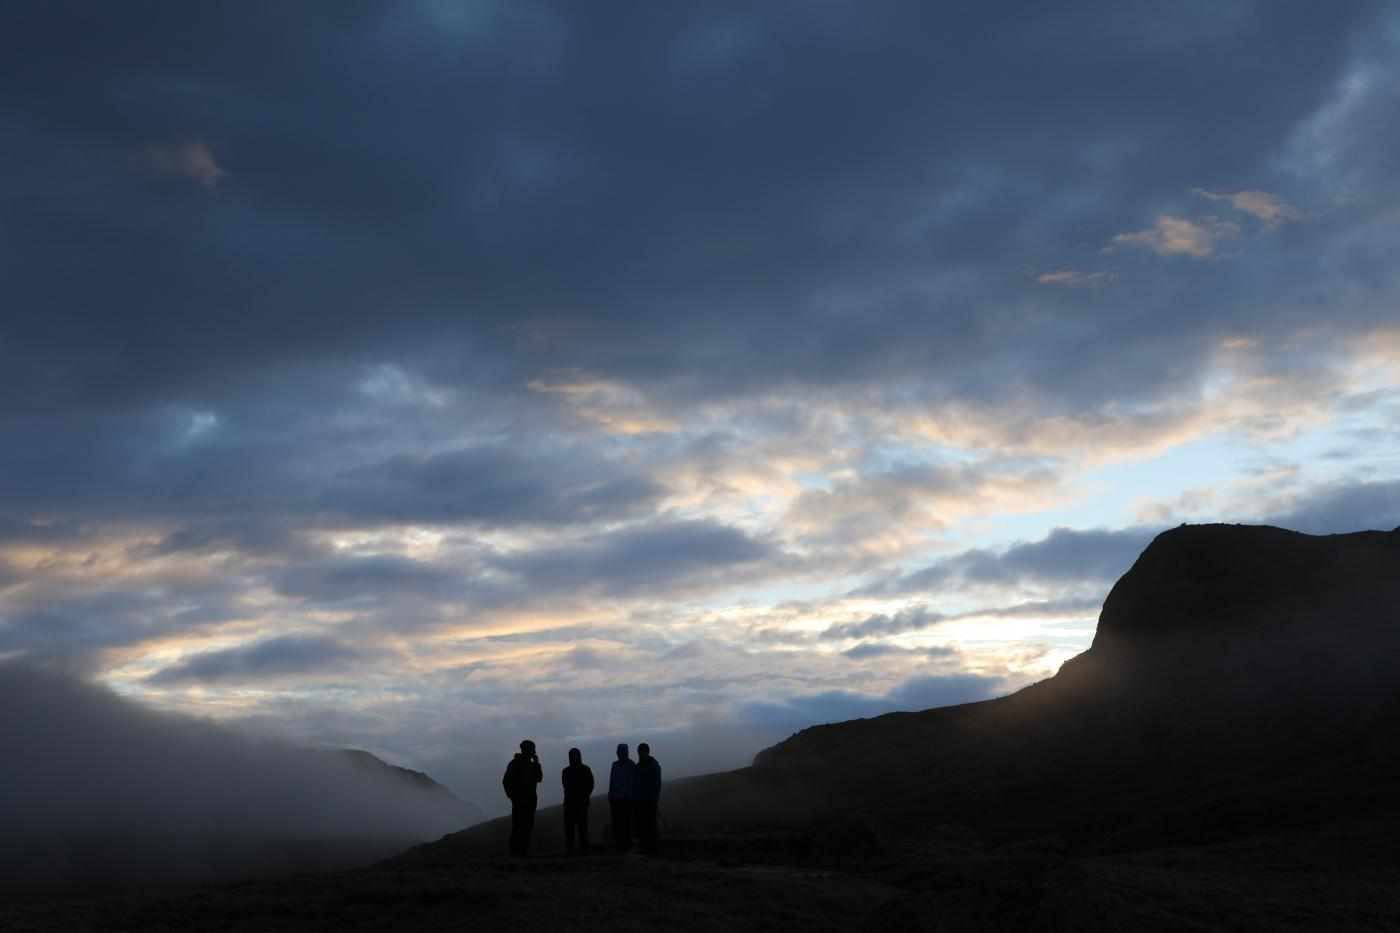 Hikers on mountain top with fog, sun and clouds. Photo by Morten Christensen - Visit Greenland